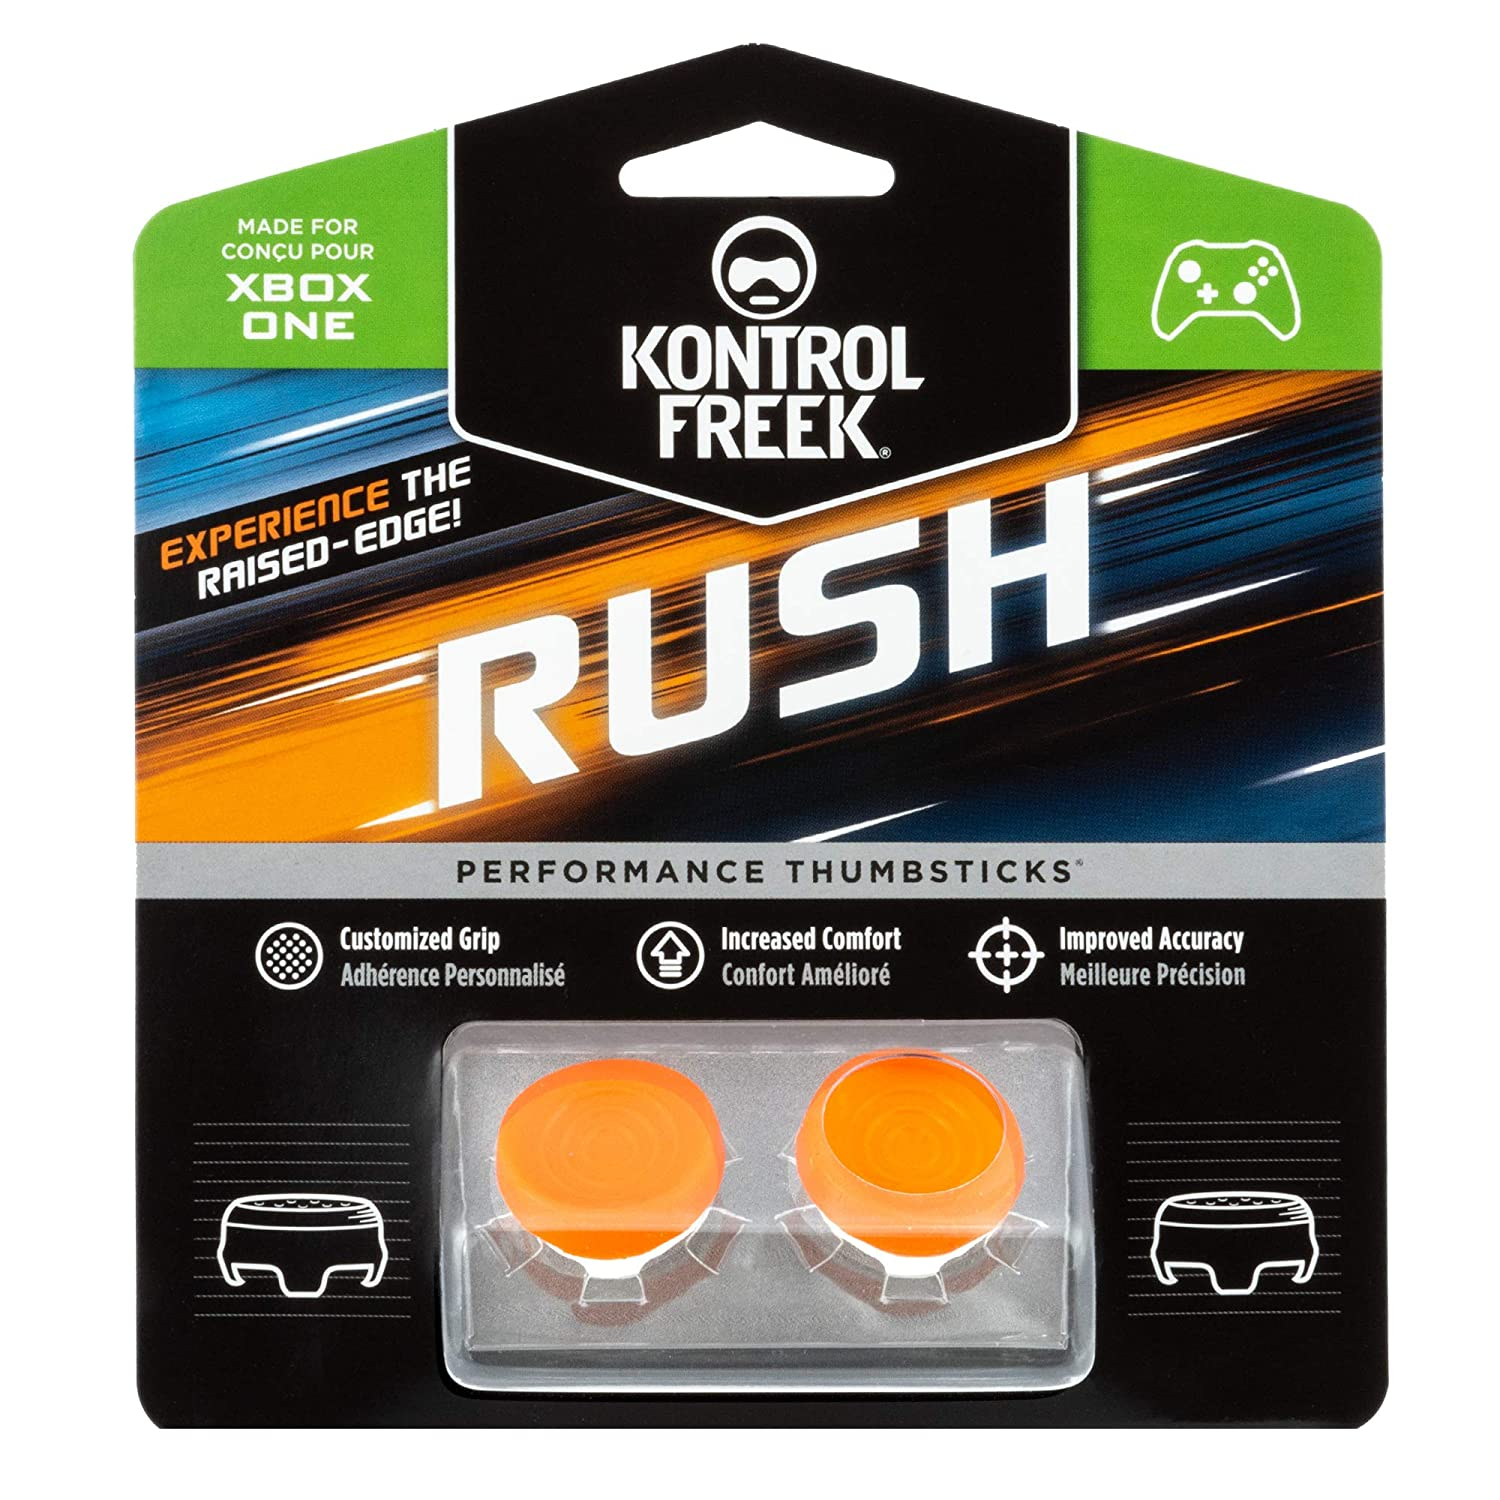 KontrolFreek Rush Performance Thumbsticks and Xbox for Special Product Campaign One